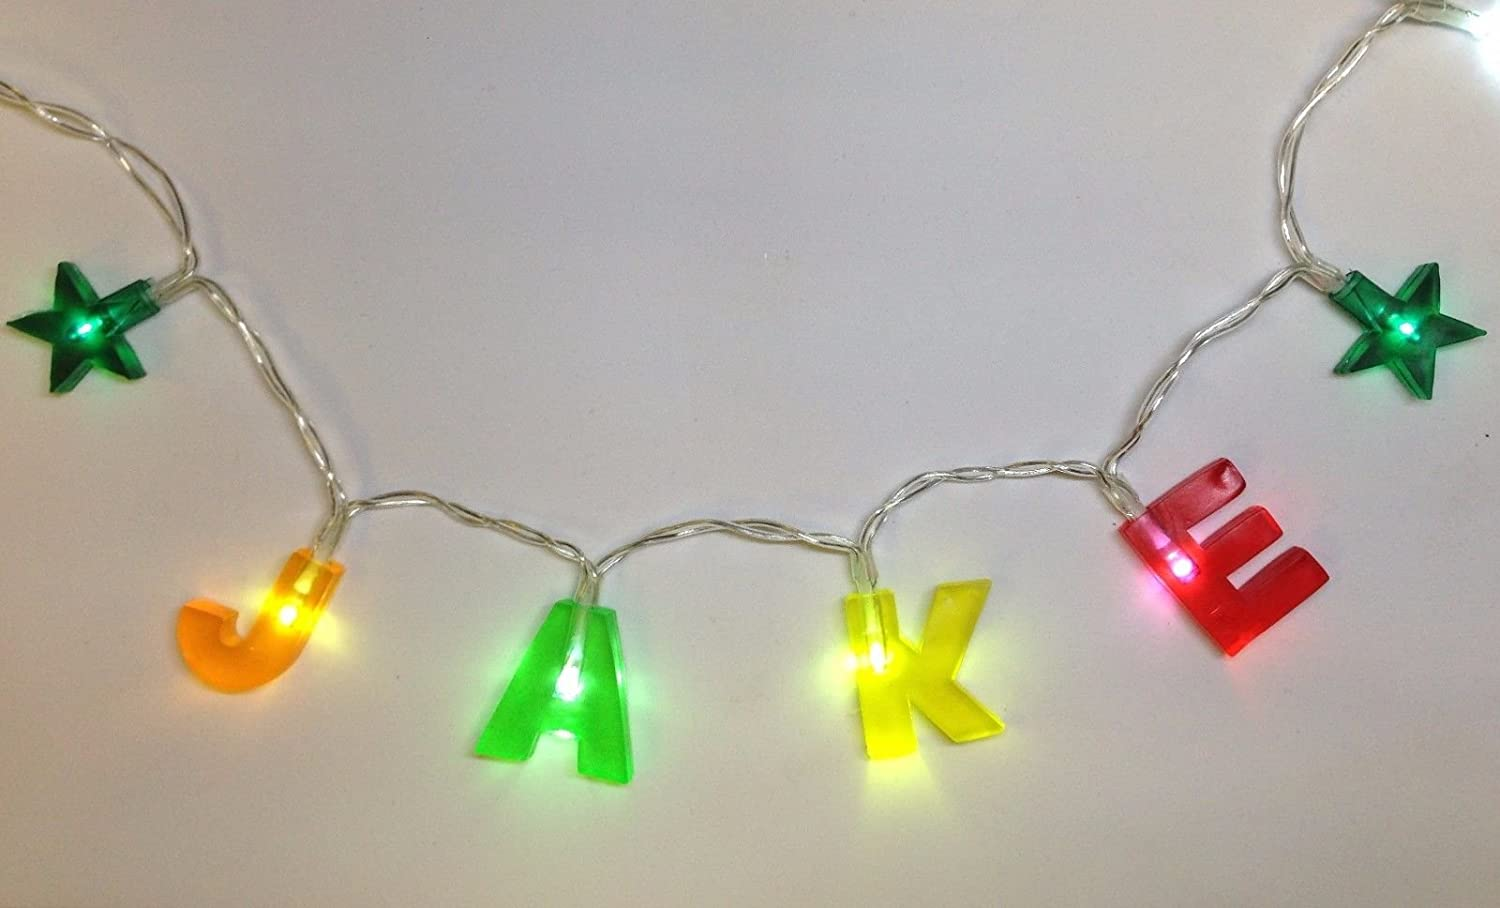 ANY NAME IN LIGHTS //// LED Light Chain with any name available up to 8 letters or characters get YOUR NAME IN LIGHTS!